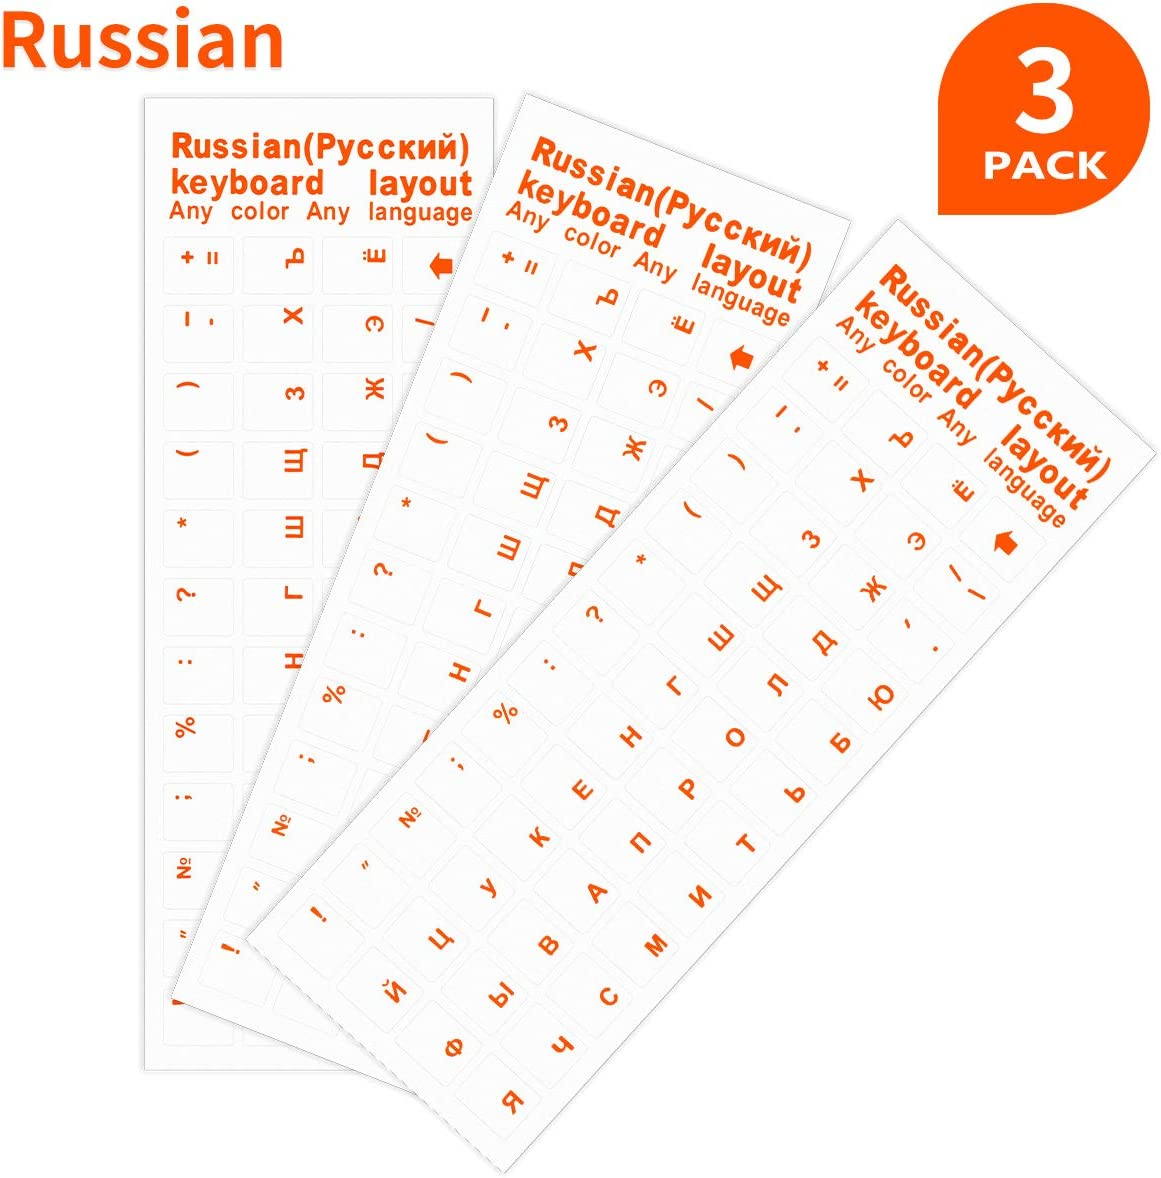 3 Pack Transparent Replacement Russian Keyboard Stickers, Transparent Background with Organge Lettering Keyboard Stickers for Laptop PC Computer Desktop Keyboards(Don't Suggest Use for Black Keyboard)